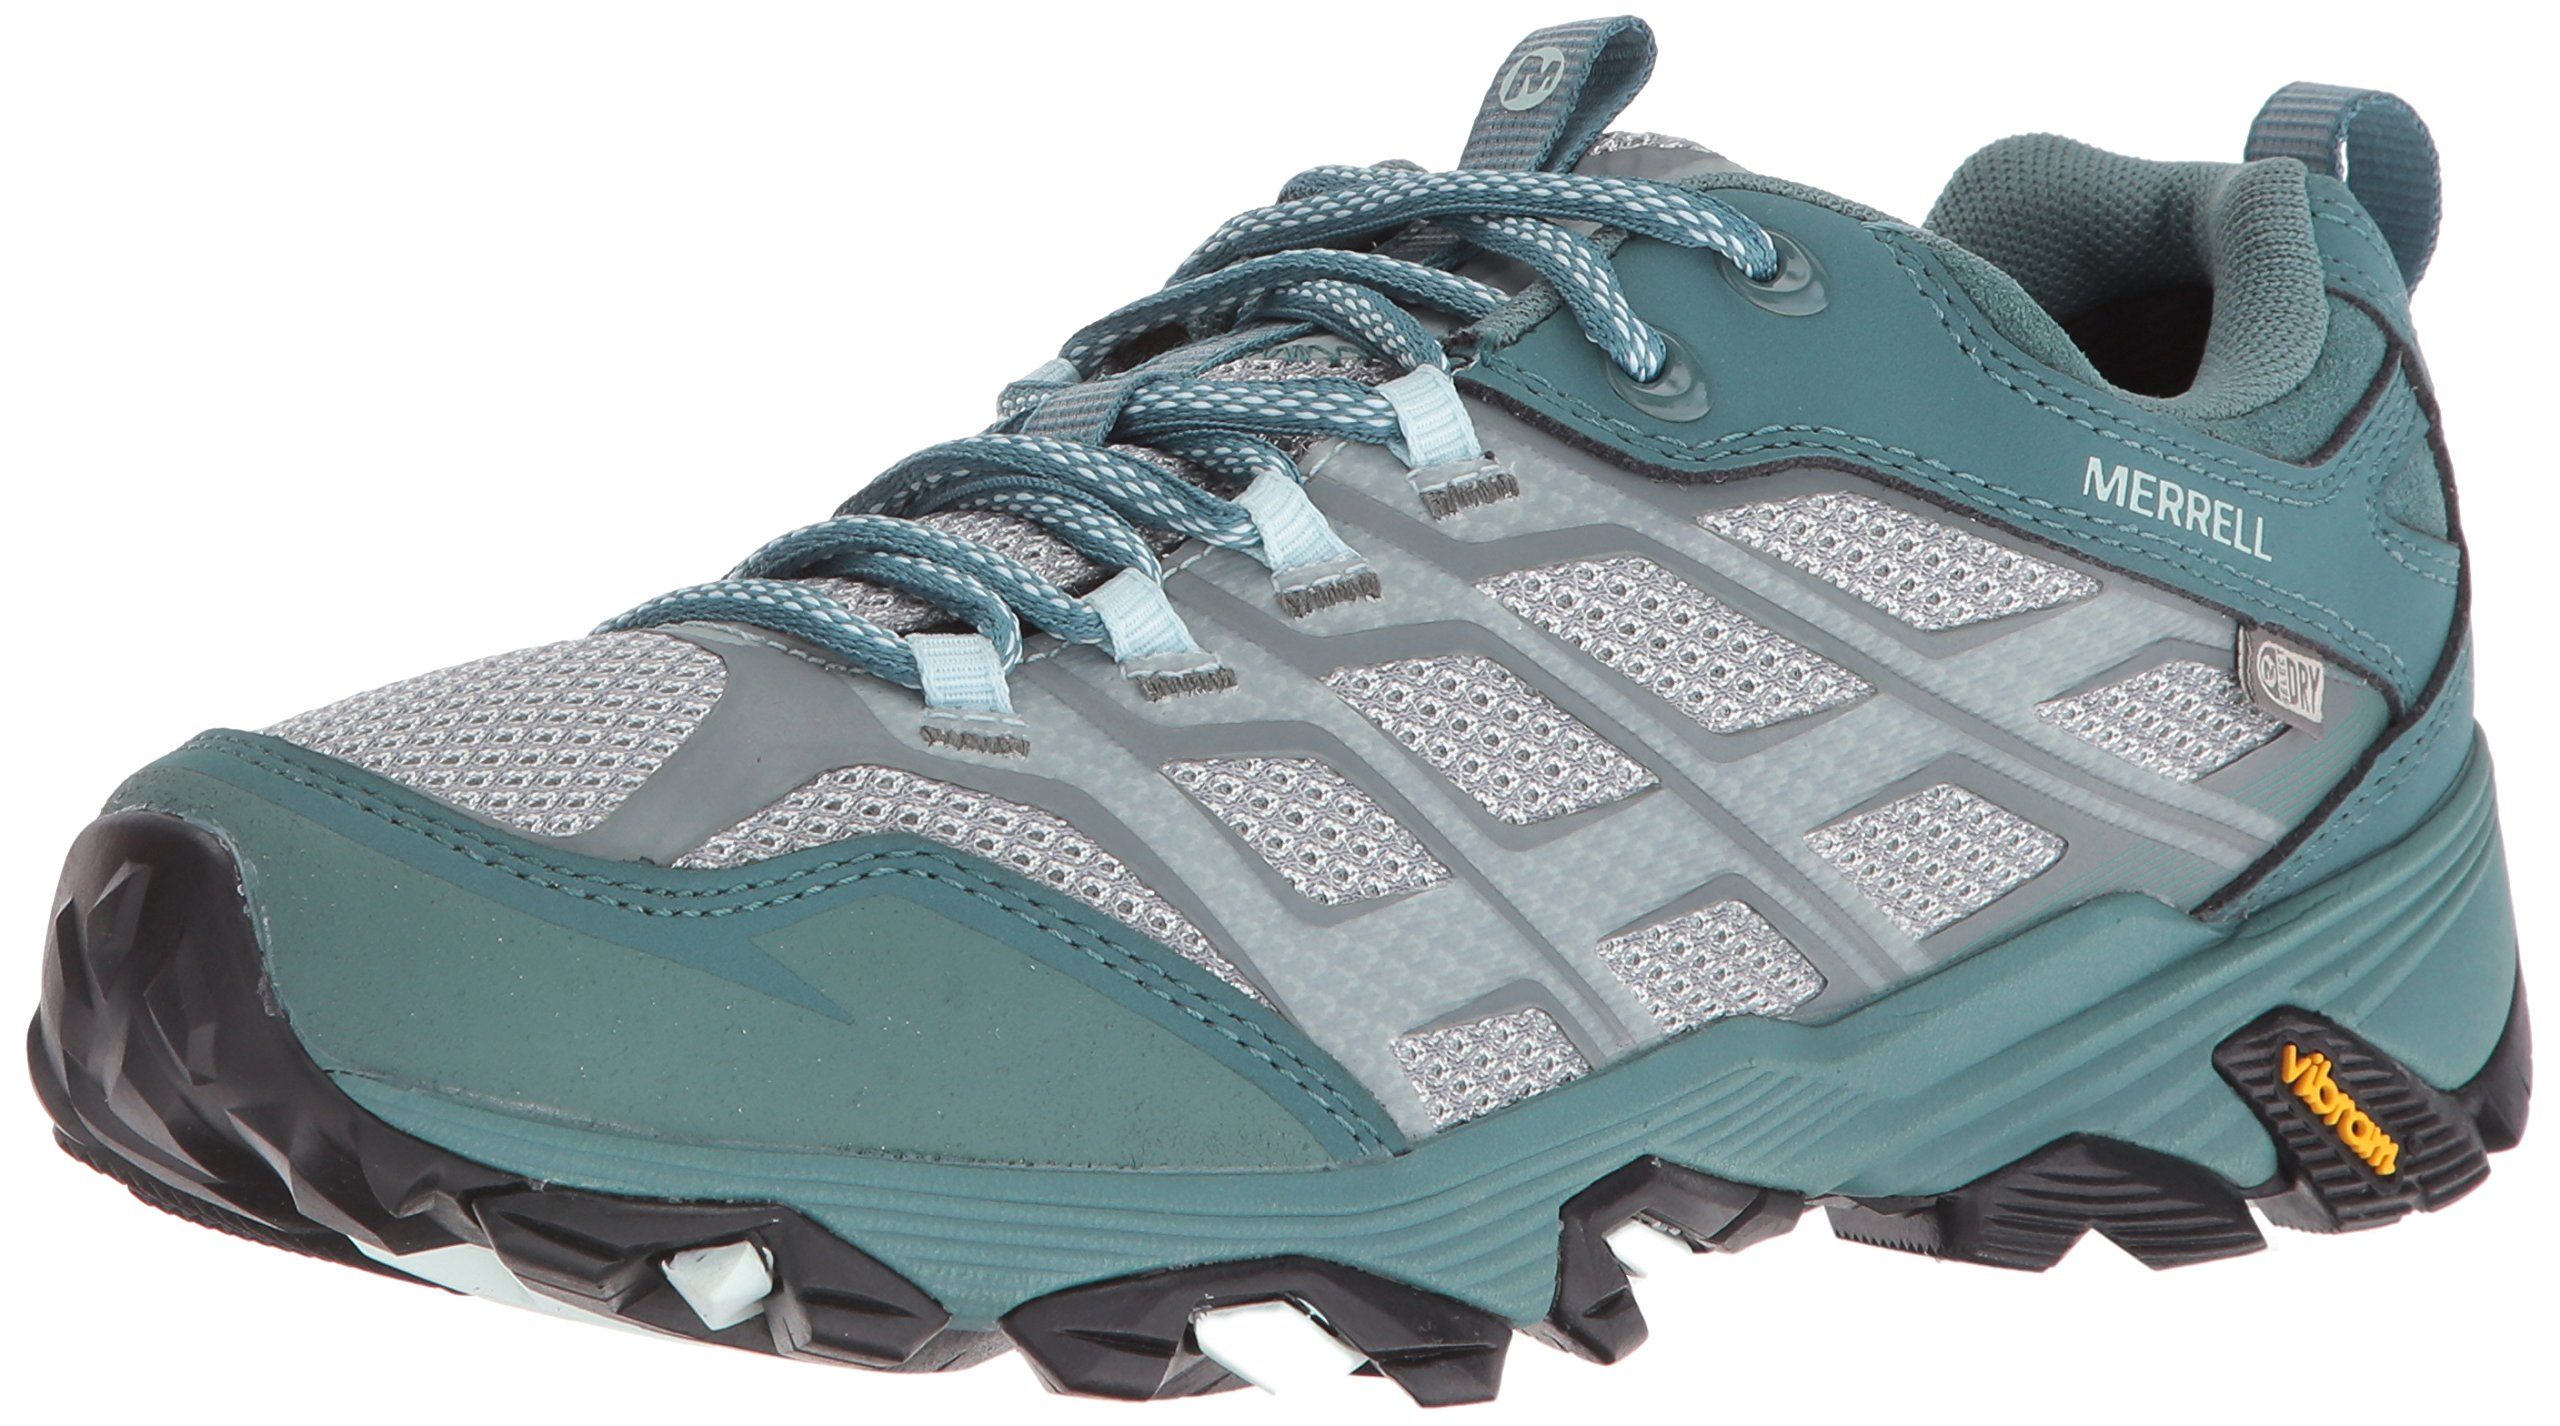 Merrell Women's Moab Fst Waterproof Hiking Boot, Sea Pine, 8.5 M US